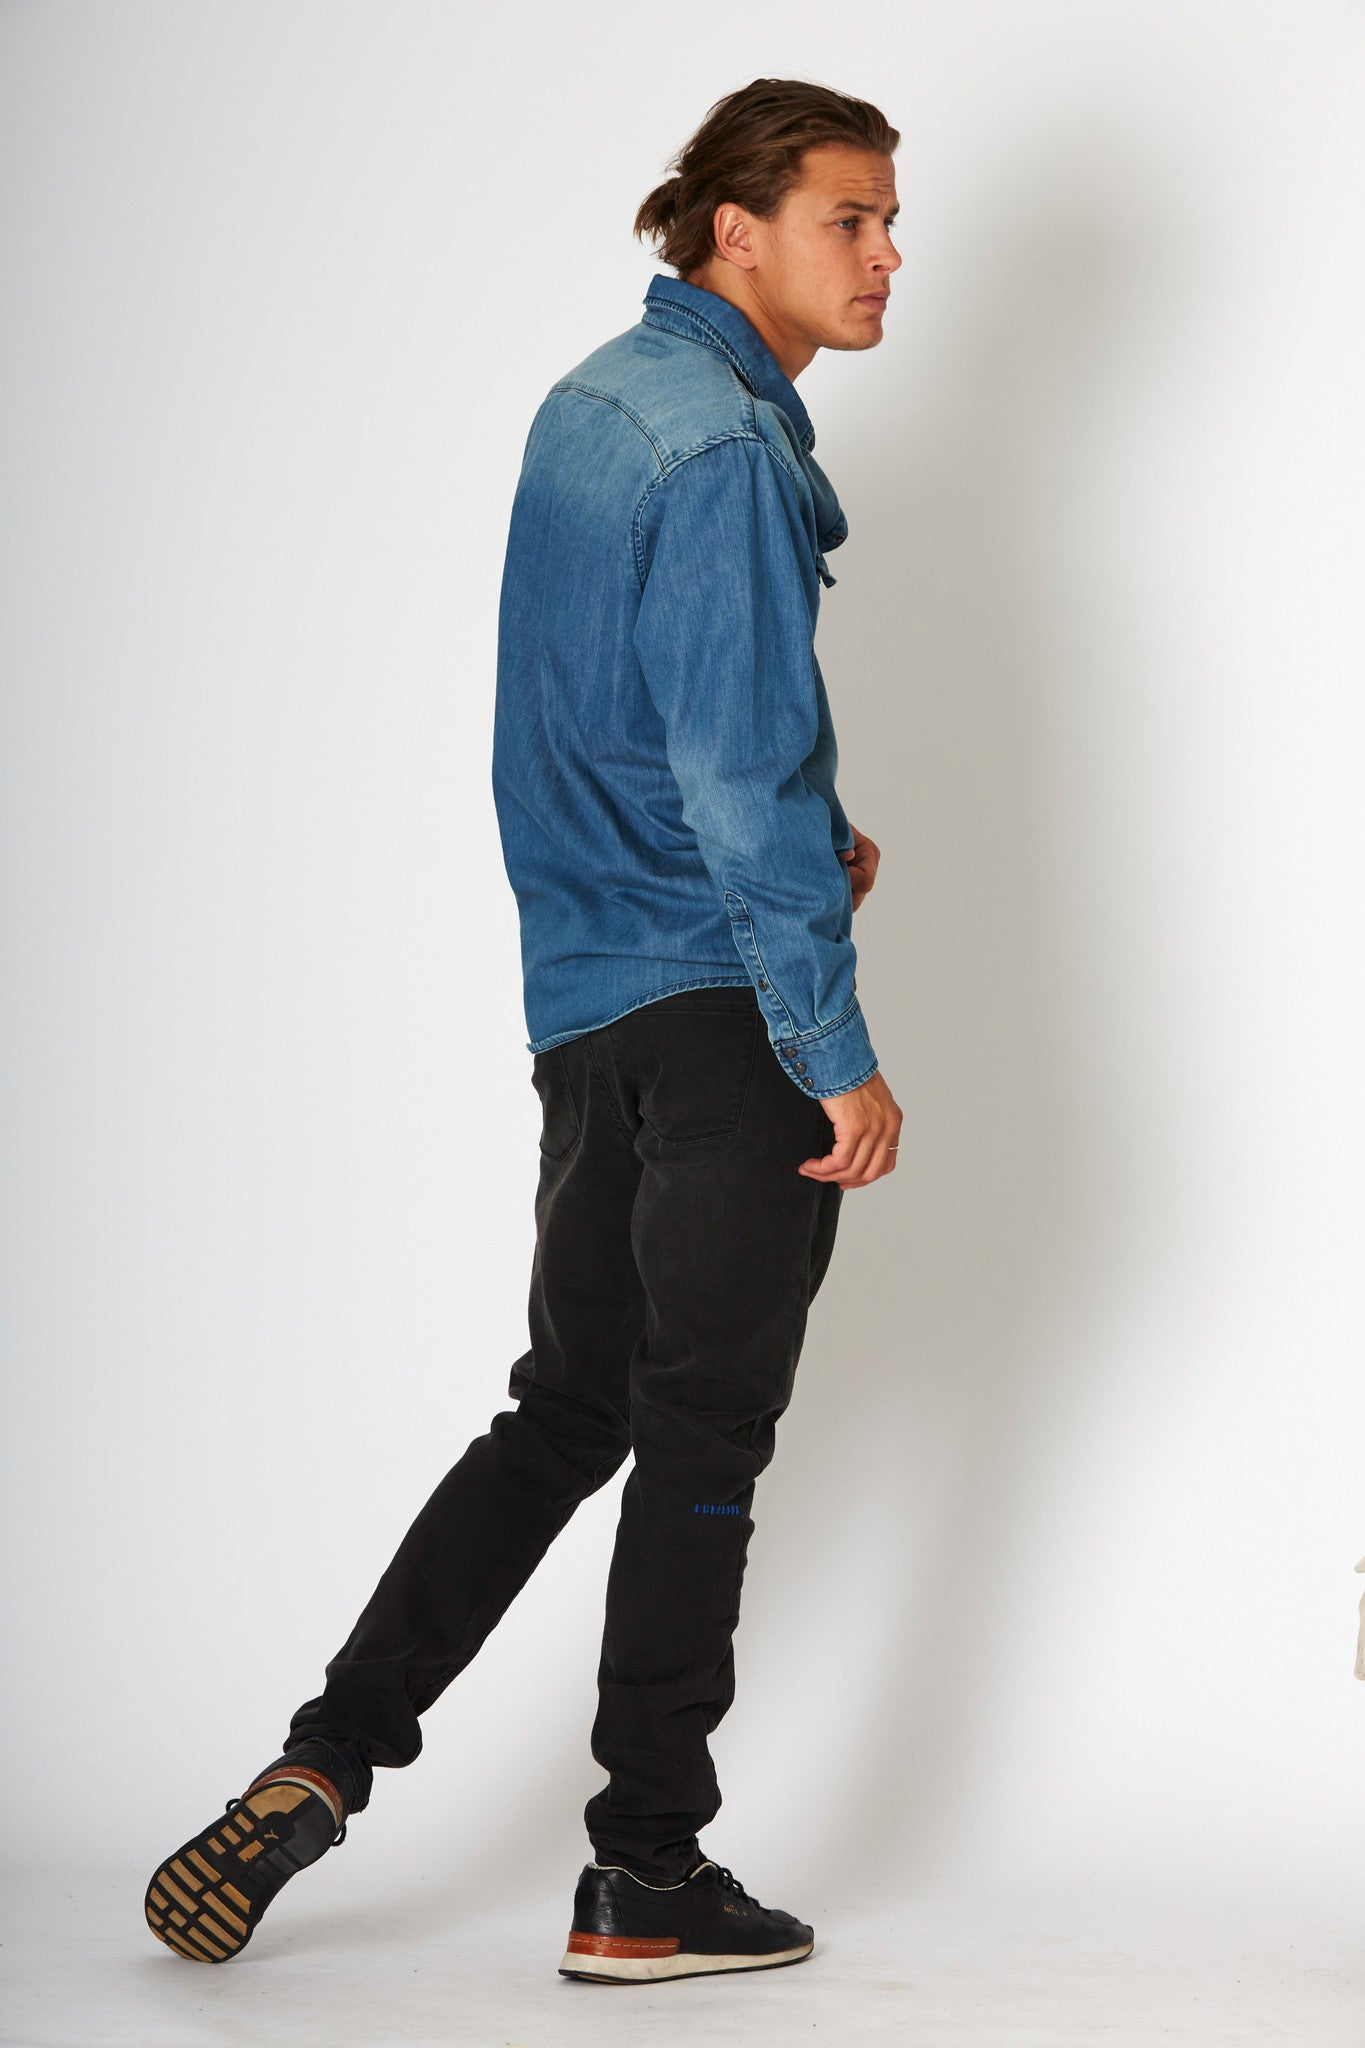 #2A18 Stretch Slim Phase Black Patch - denimcolab